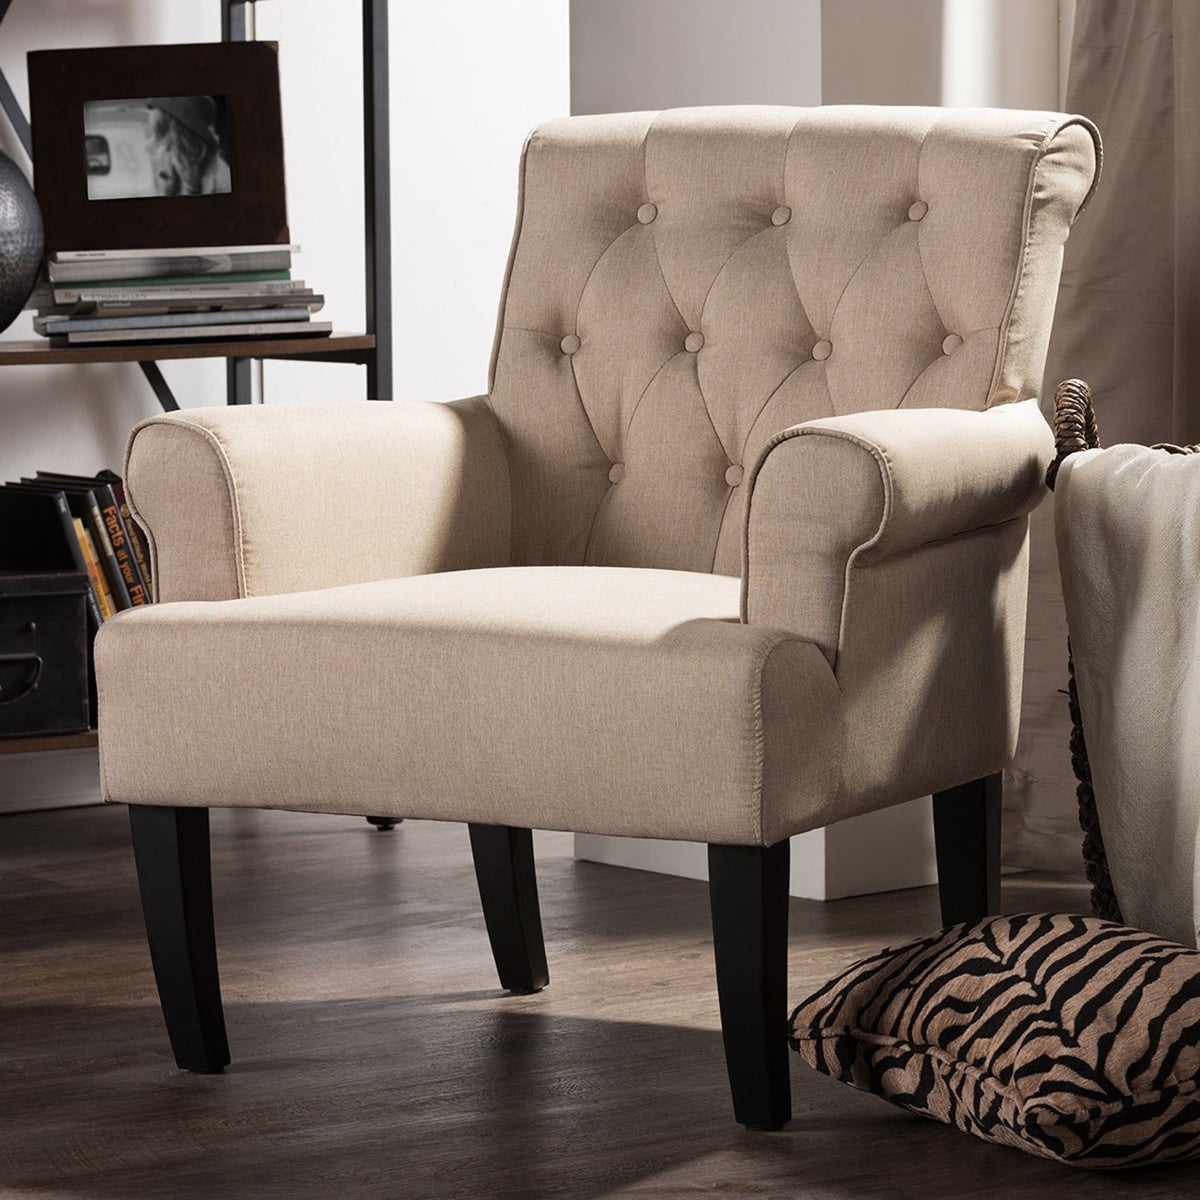 Shop Baxton Studio Barret Modern Beige Linen Upholstered Rolled Arm Tufted Club  Chair   Free Shipping Today   Overstock.com   10354659